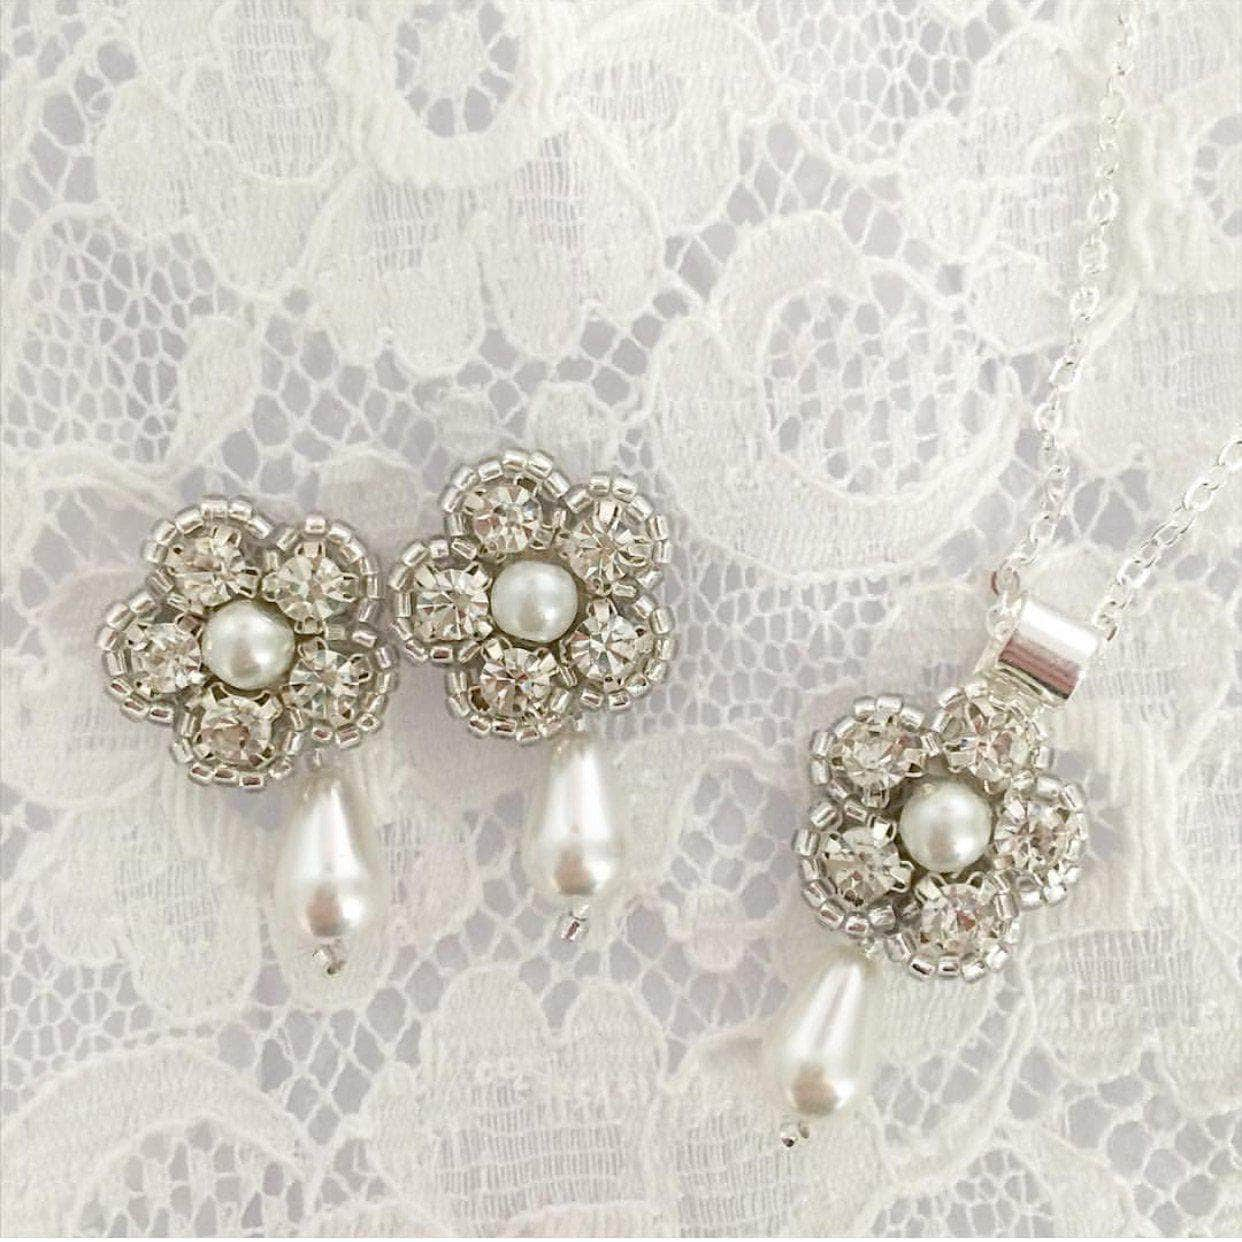 Wedding Earring Silver Pearl drop wedding earrings - 'Alexis'